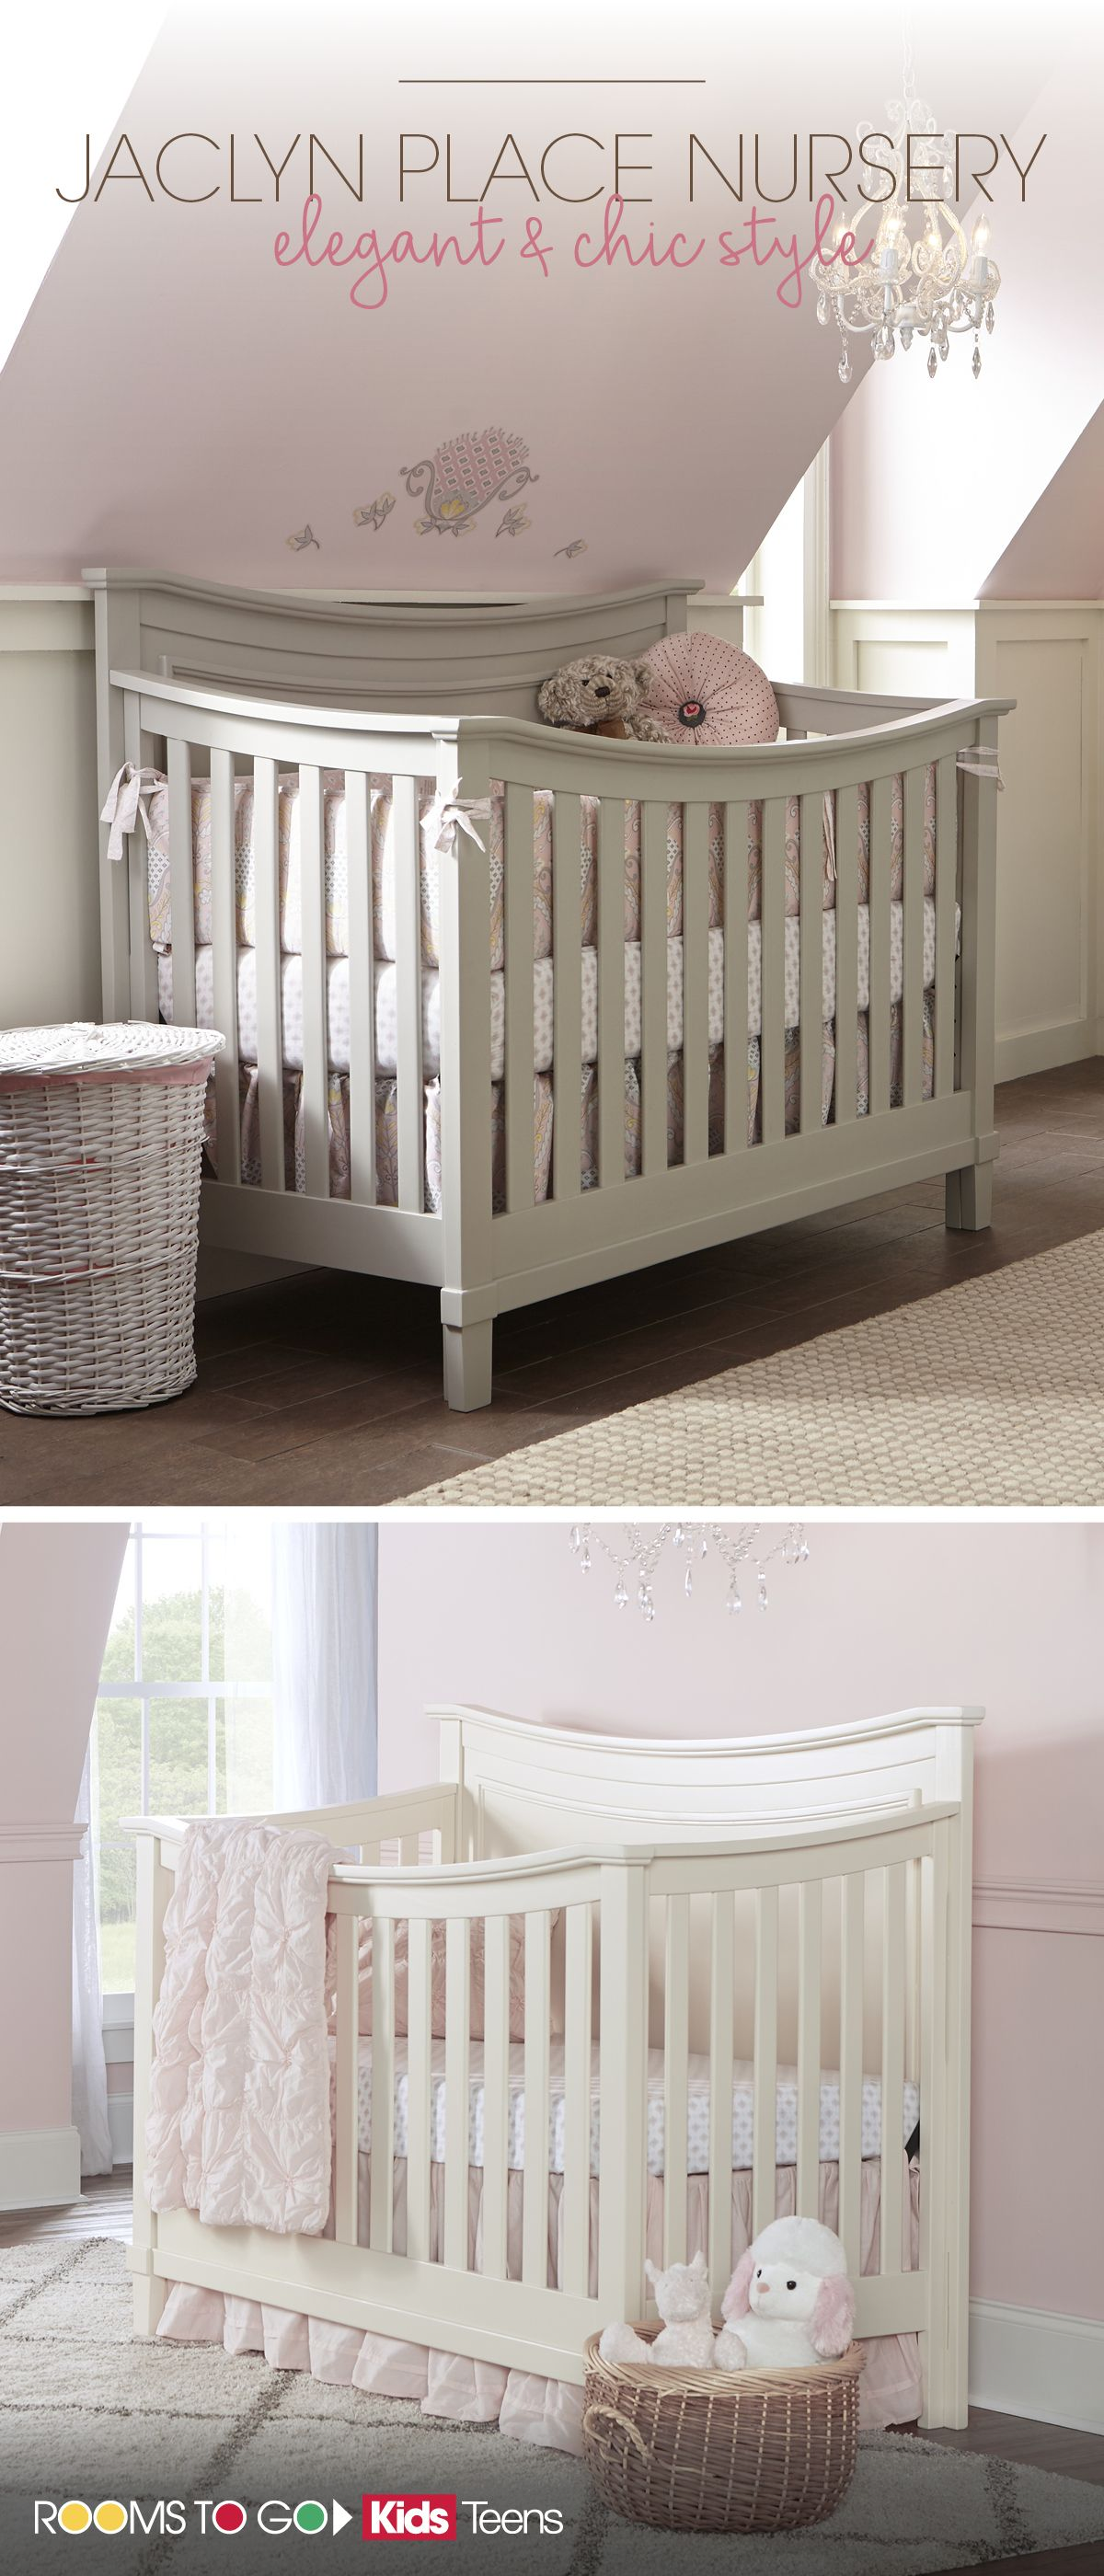 Find A Modern Elegant And Chic Girls Nursery For Your Baby At Rooms To Go Kids Browse Our Co Baby Bedroom Furniture Baby Nursery Furniture Baby Room Neutral